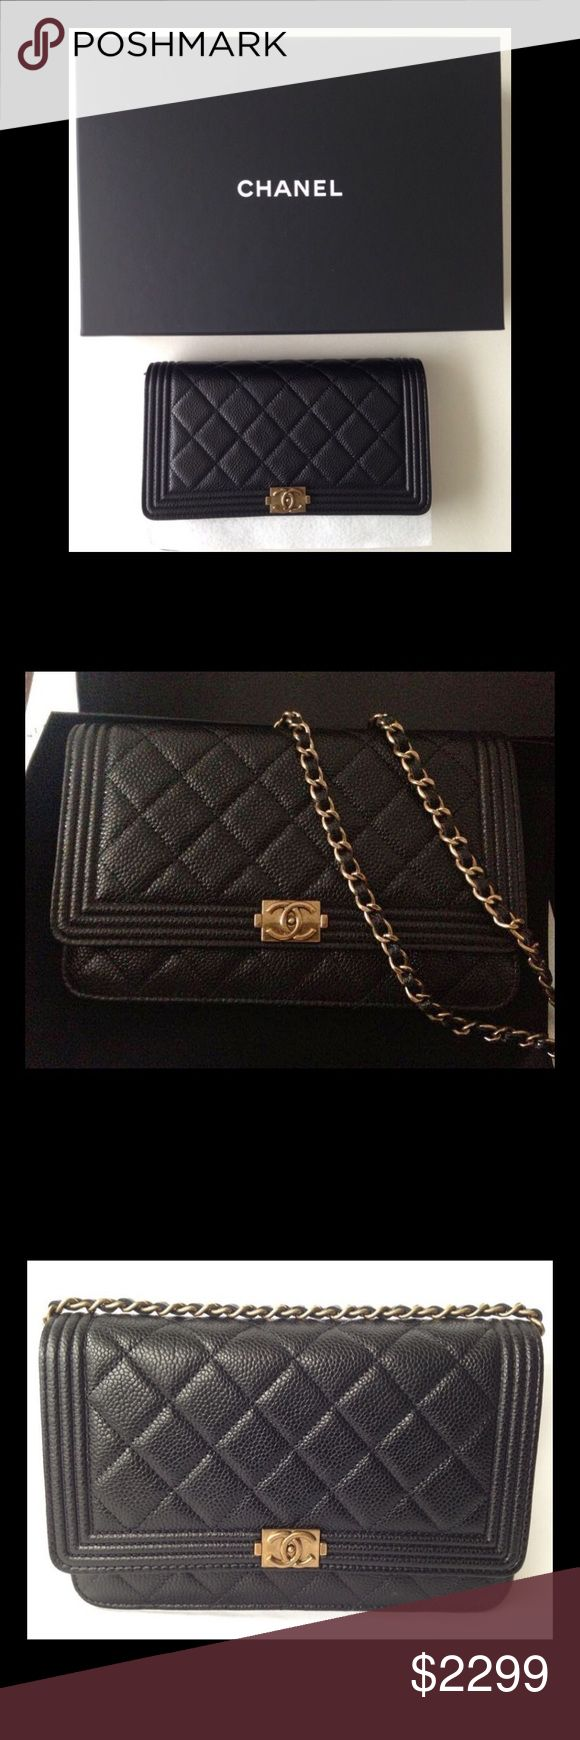 """CHANEL BOY WOC CAVIAR LEATHER WITH GOLD HARDWARE CHANEL BOY BLACK WOC WALLET ON CHAIN CAVIAR LEATHER WITH GOLD HARDWARE  Beautiful rich quilted black Caviar Leather with Iconic classic antique Gold hardware and topped off with the classic gold woven clain with black leather running through it.  Measures: 7 5/8"""" Long; 5"""" High;  23"""" Strap Drop  New condition; comes with original box, authenticity card, and dustbag.   ***NO TRADES***  ***PRICE ON POSH IS FIRM***  ***SERIOUS BUYERS ONLY…"""